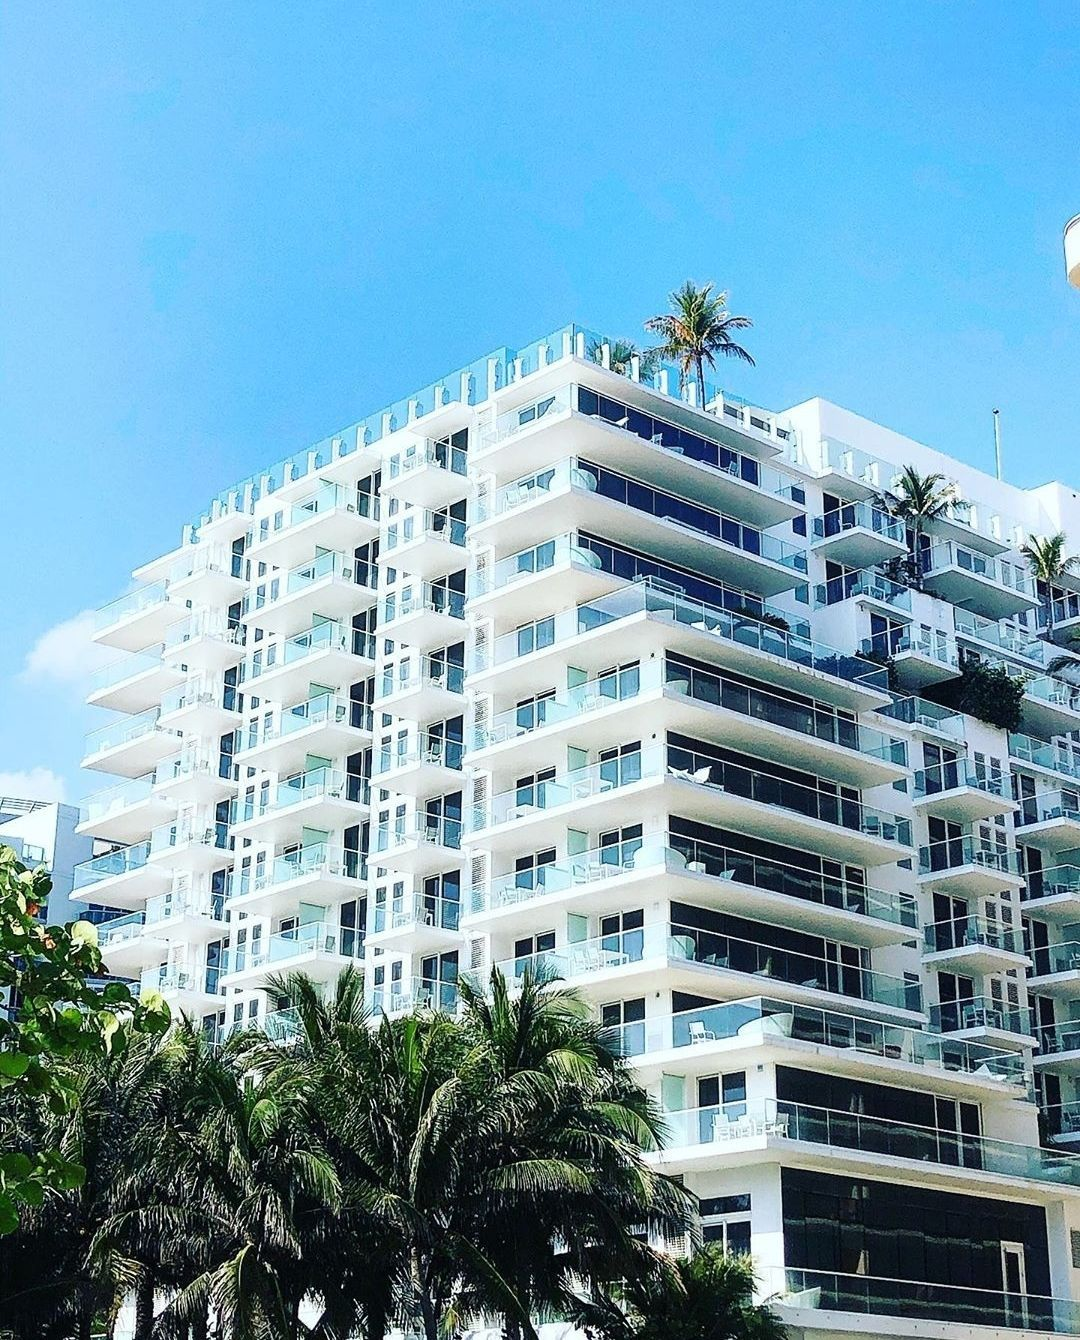 If You Could Describe Grandsurfside With Just One Word What Would It Be Photo By Steph722001 Grandsurfside North Miami Beach Grand Beach Hotel Surfside